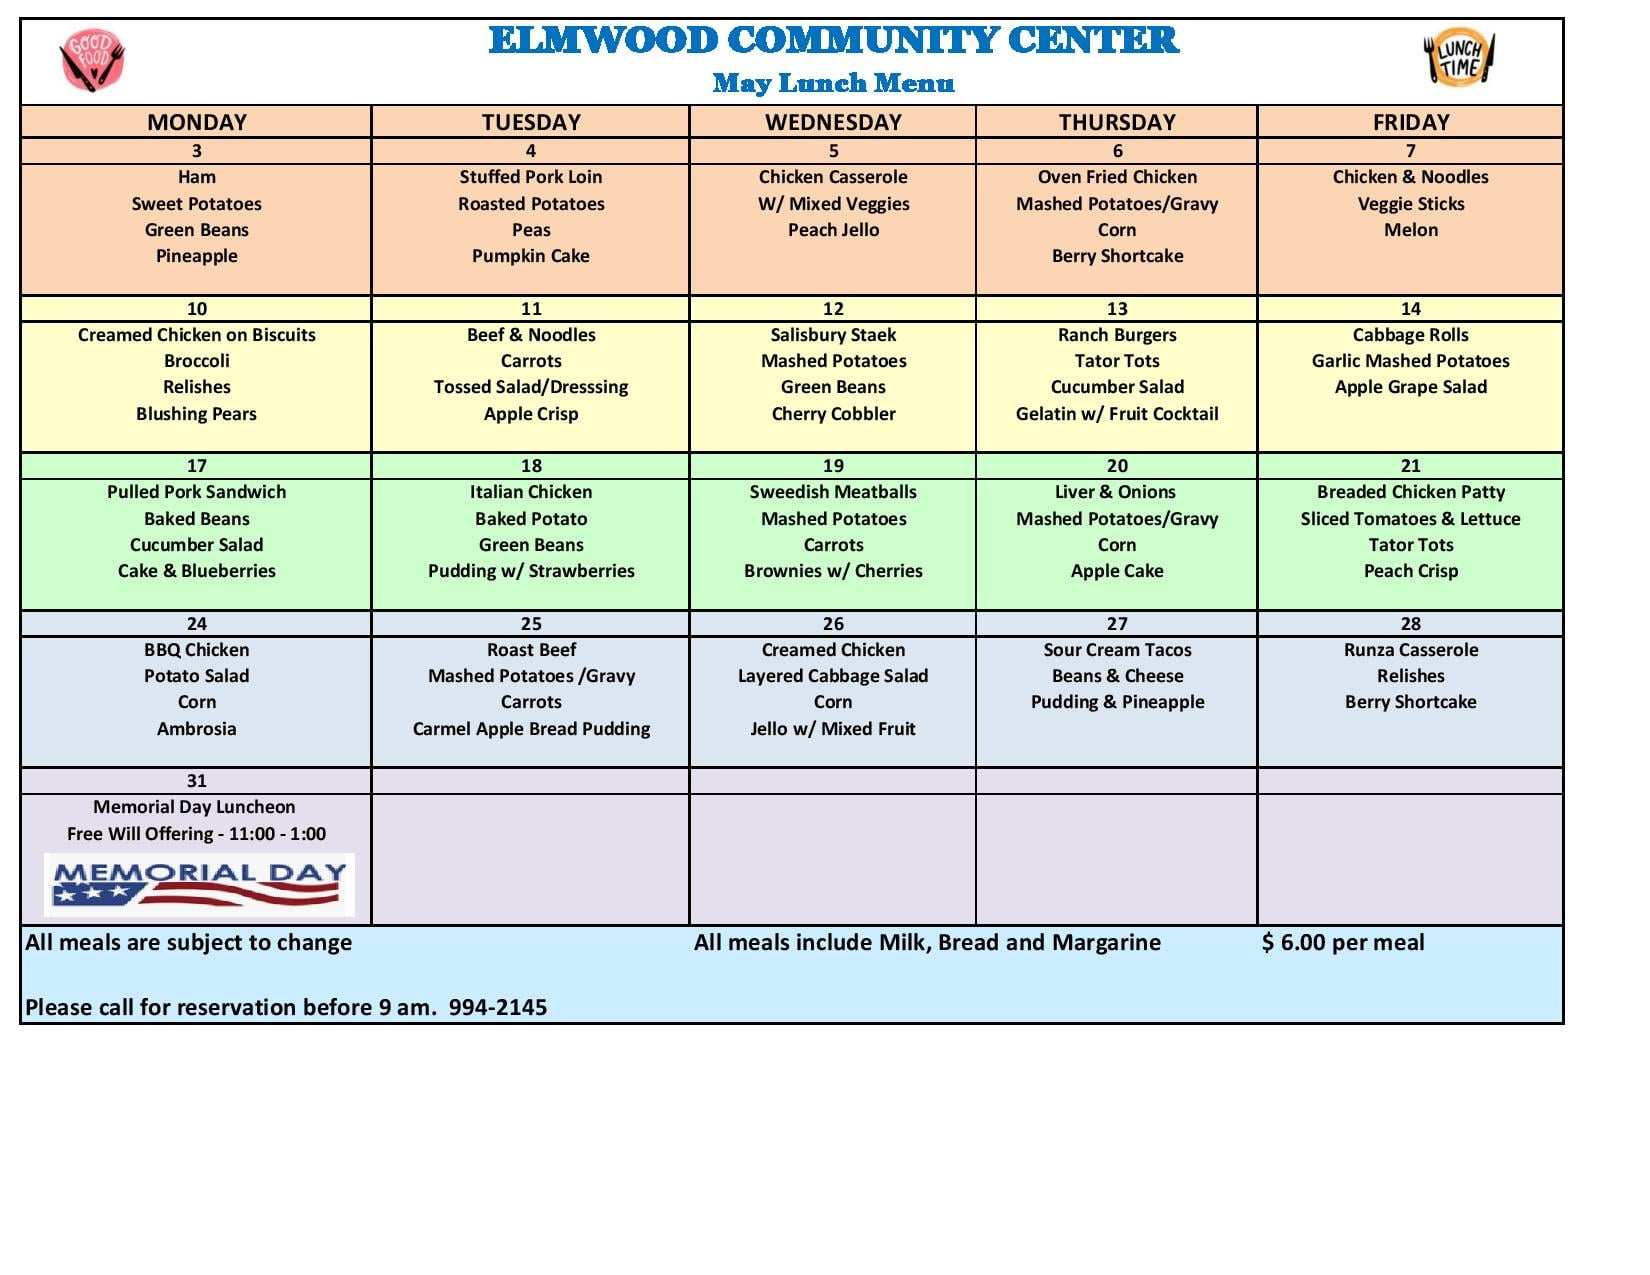 elmwood community center menu 521